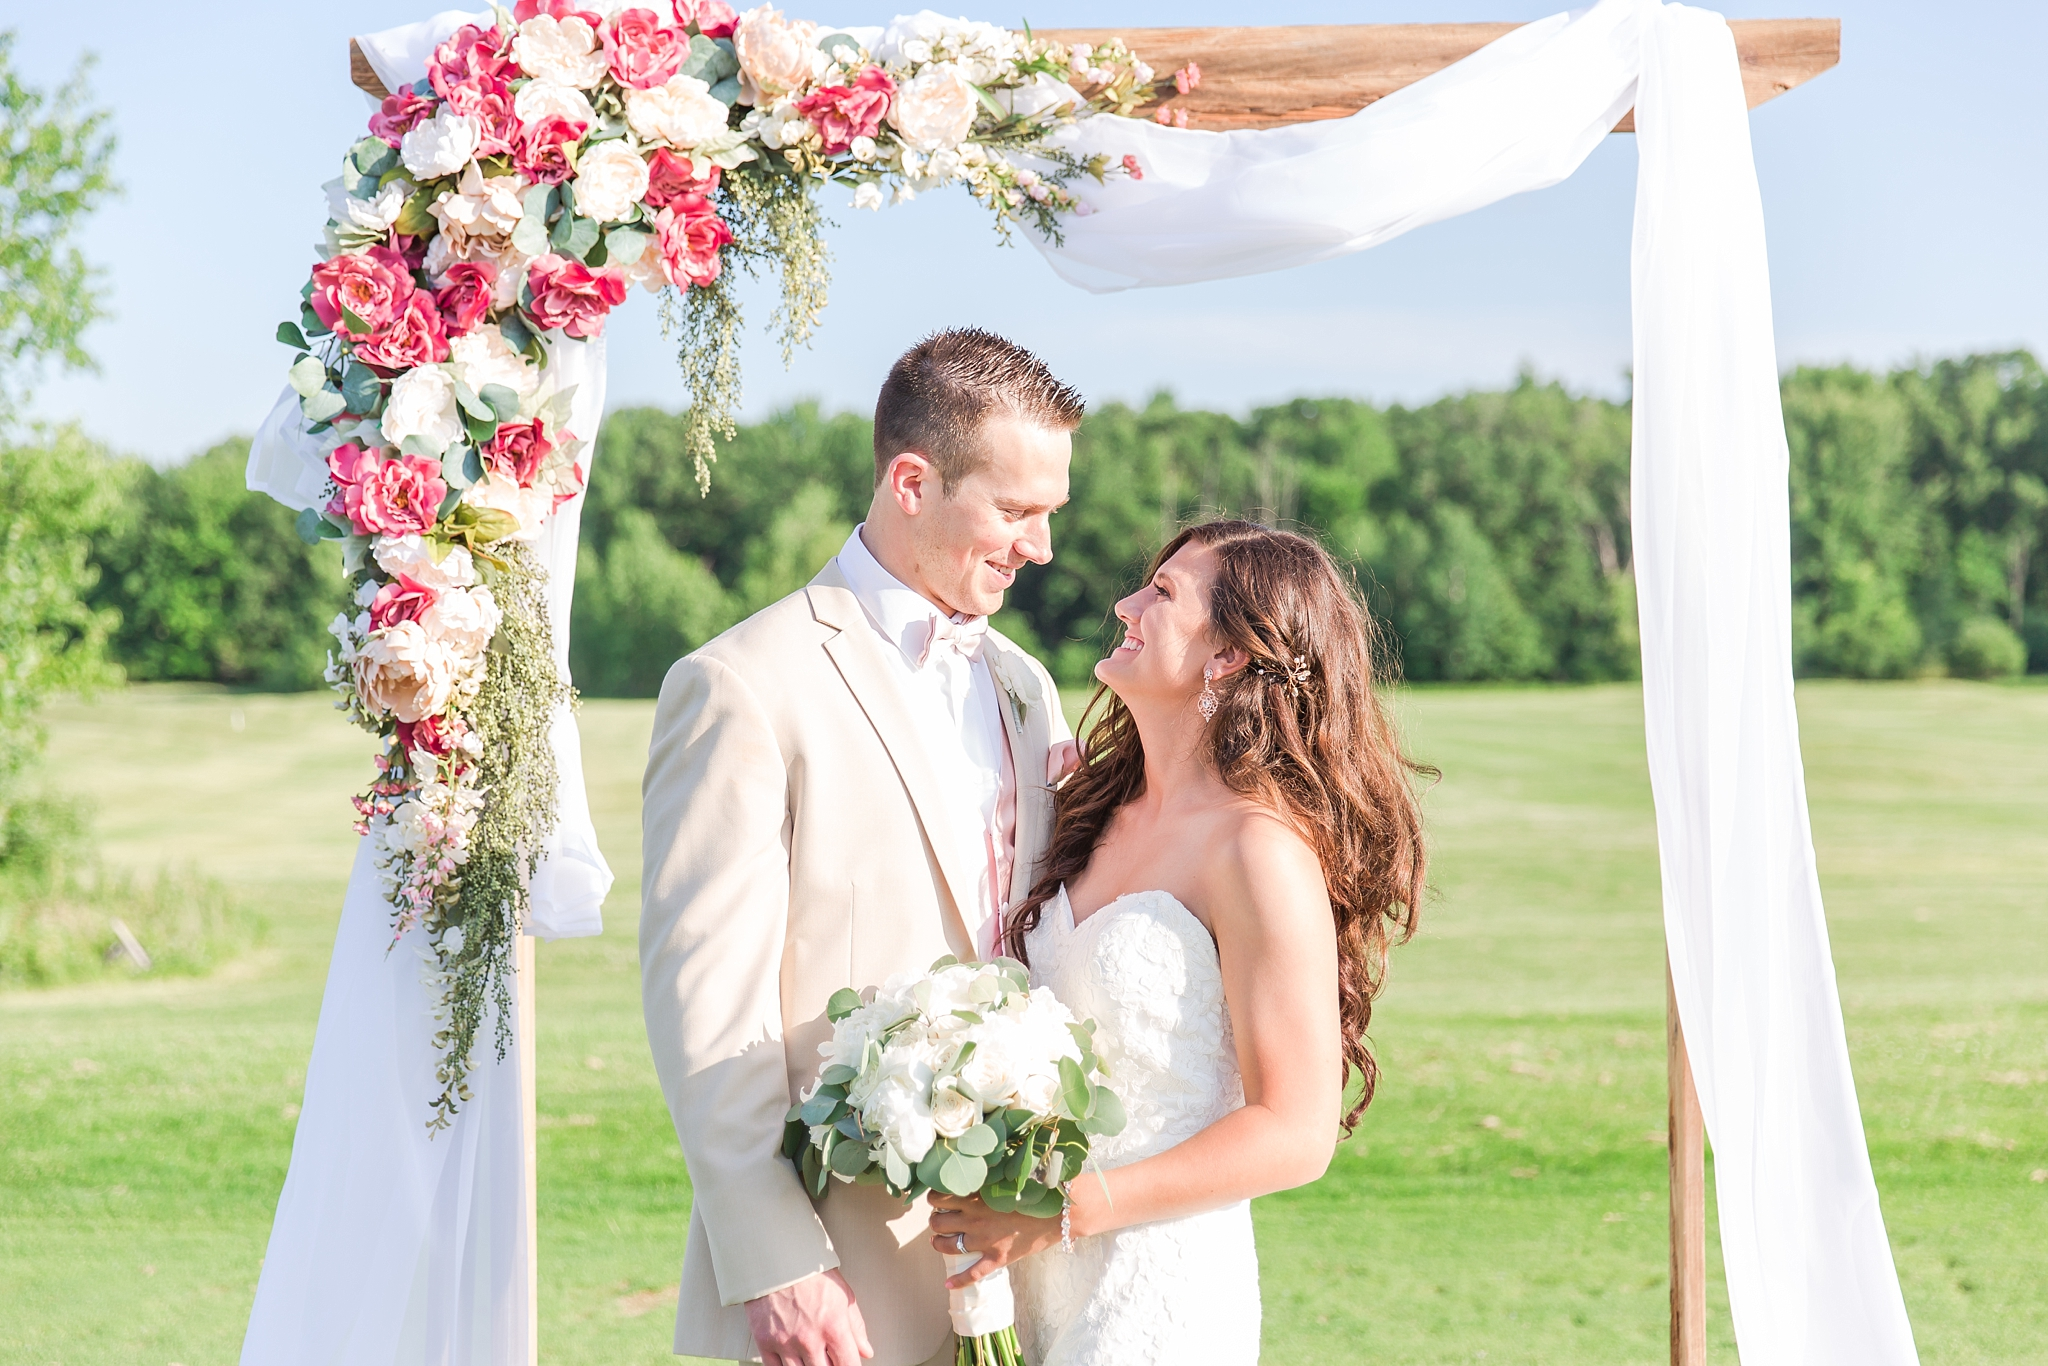 candid-timeless-wedding-photos-at-the-captains-club-in-grand-blanc-michigan-by-courtney-carolyn-photography_0062.jpg